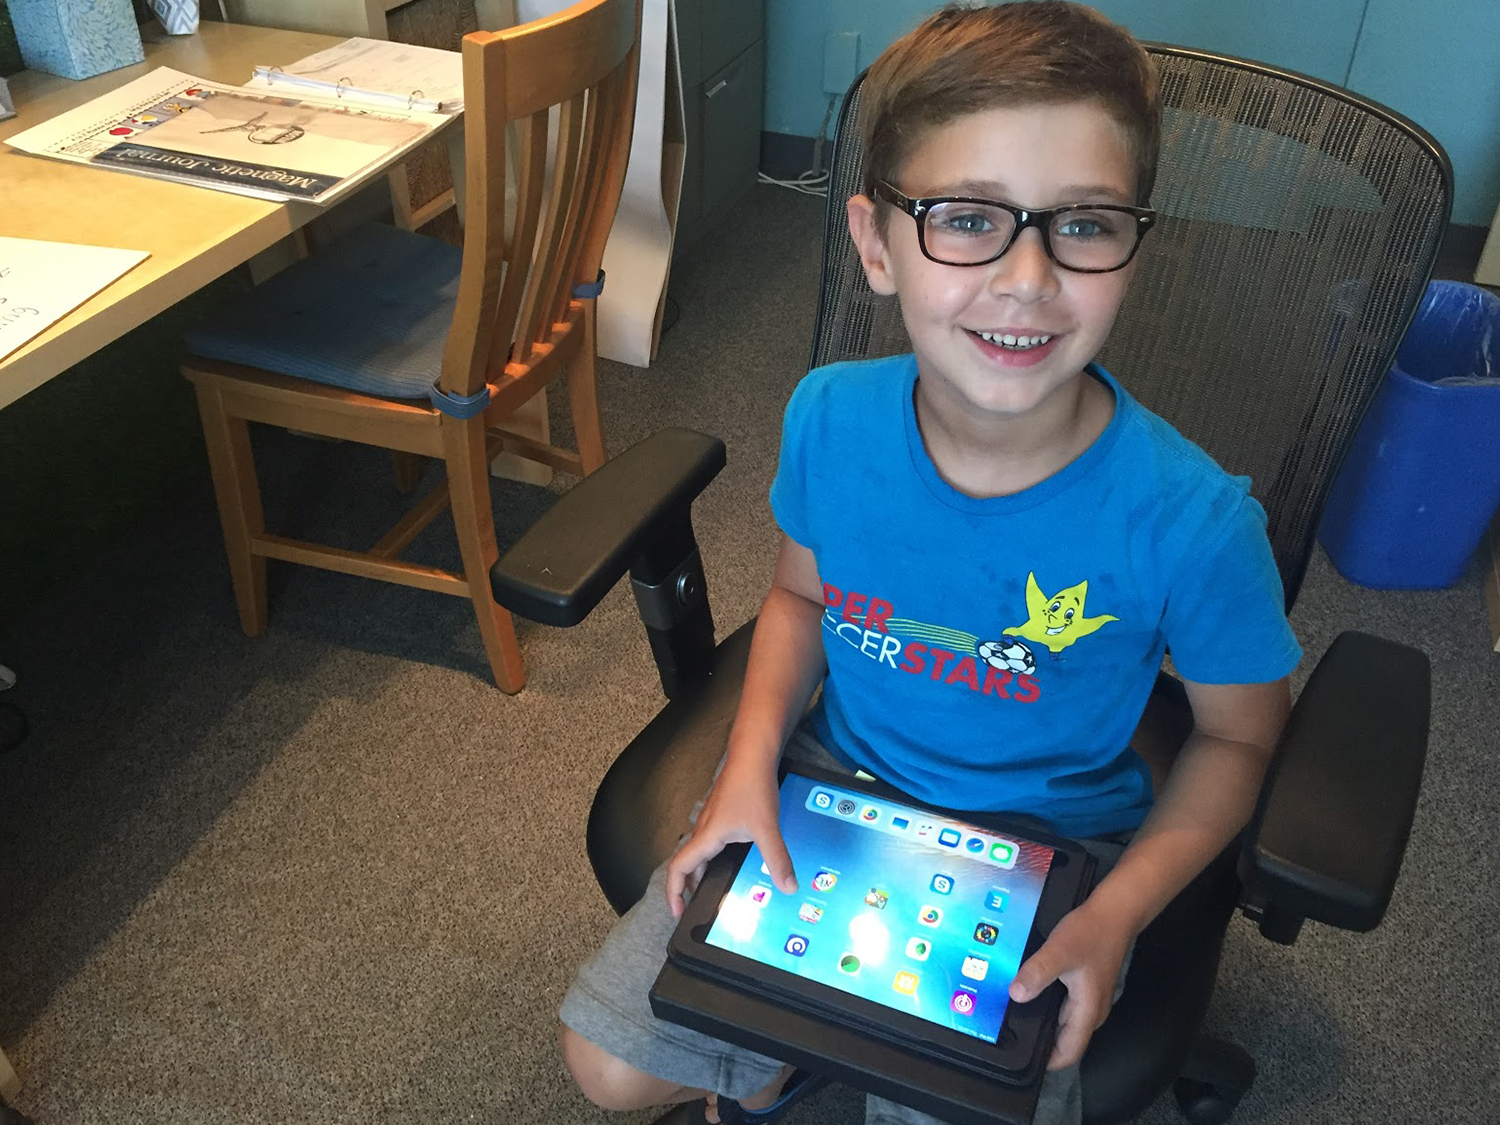 Educational Technology Tools, young boy wearing glasses sitting in a chair holding an tablet